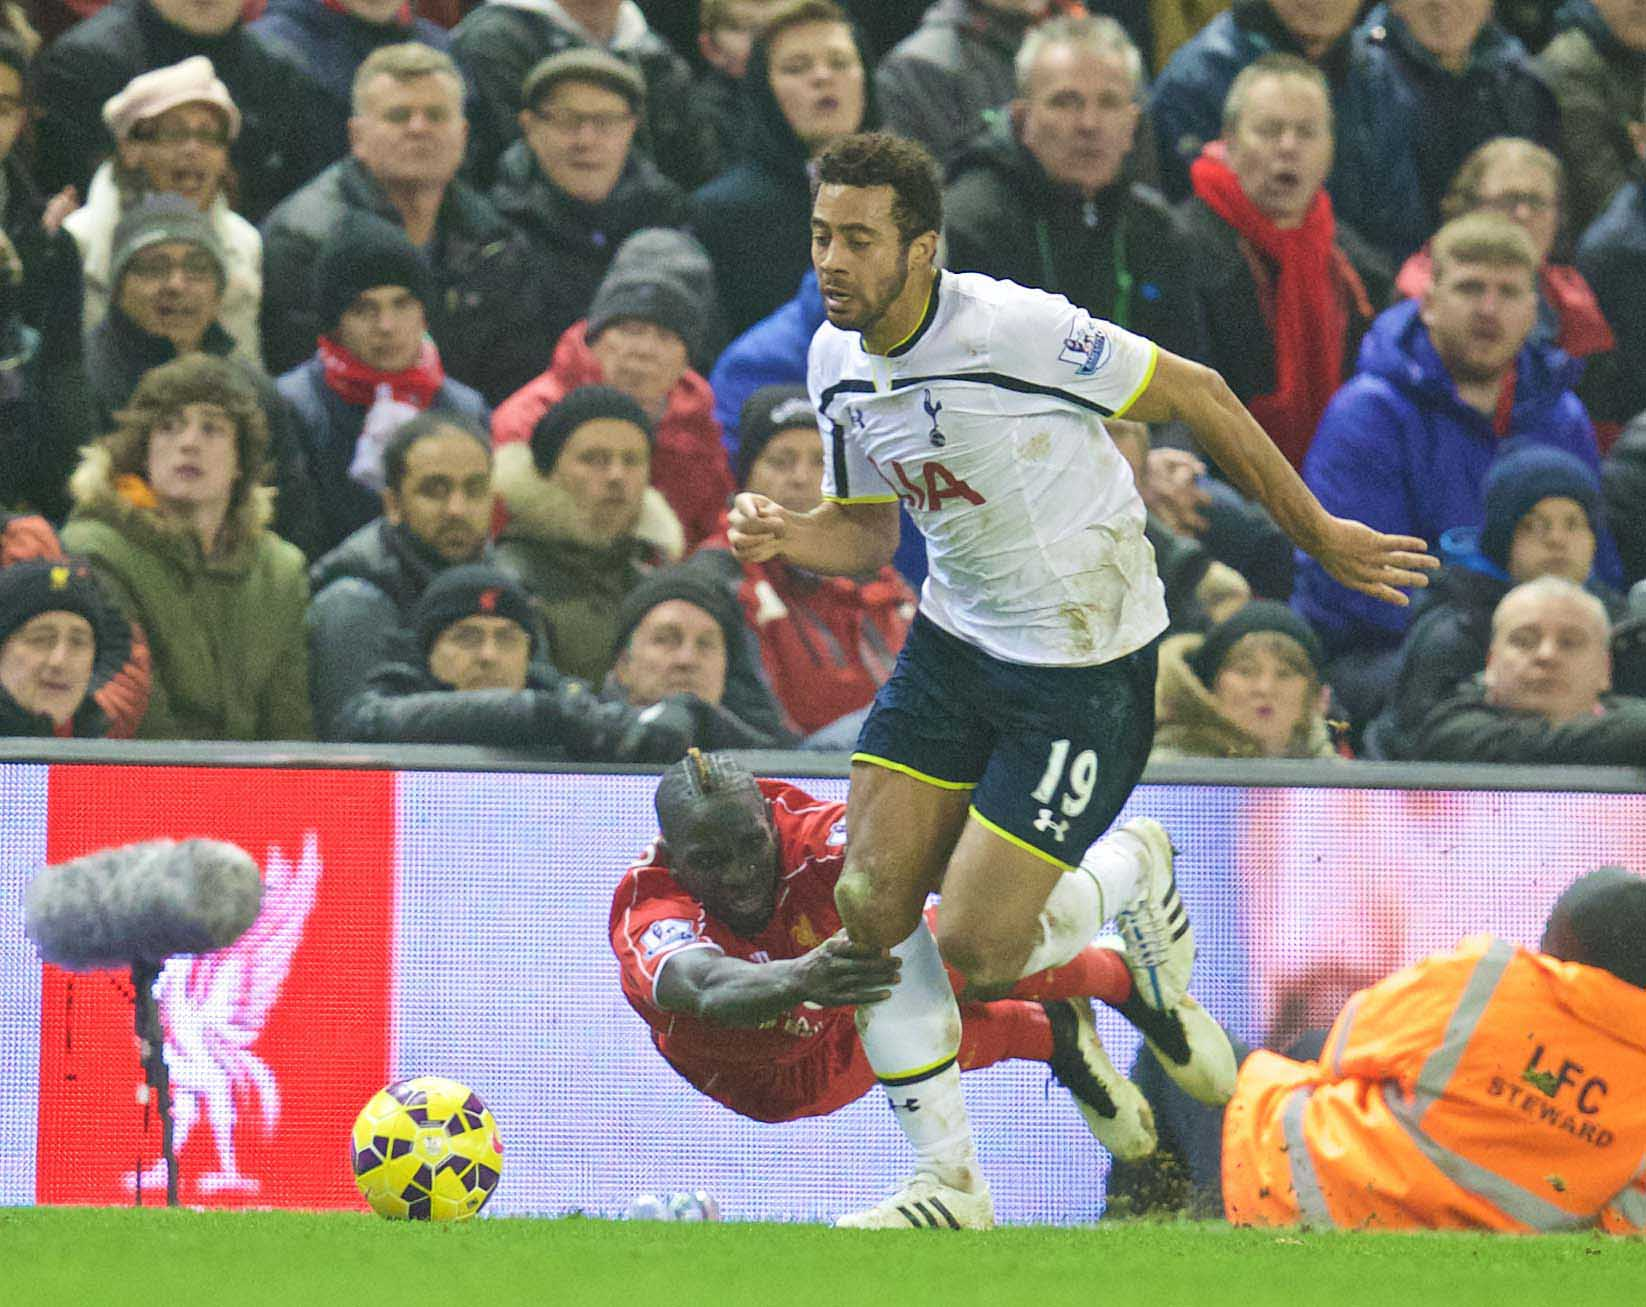 Football - FA Premier League - Liverpool FC v Tottenham Hotspur FC